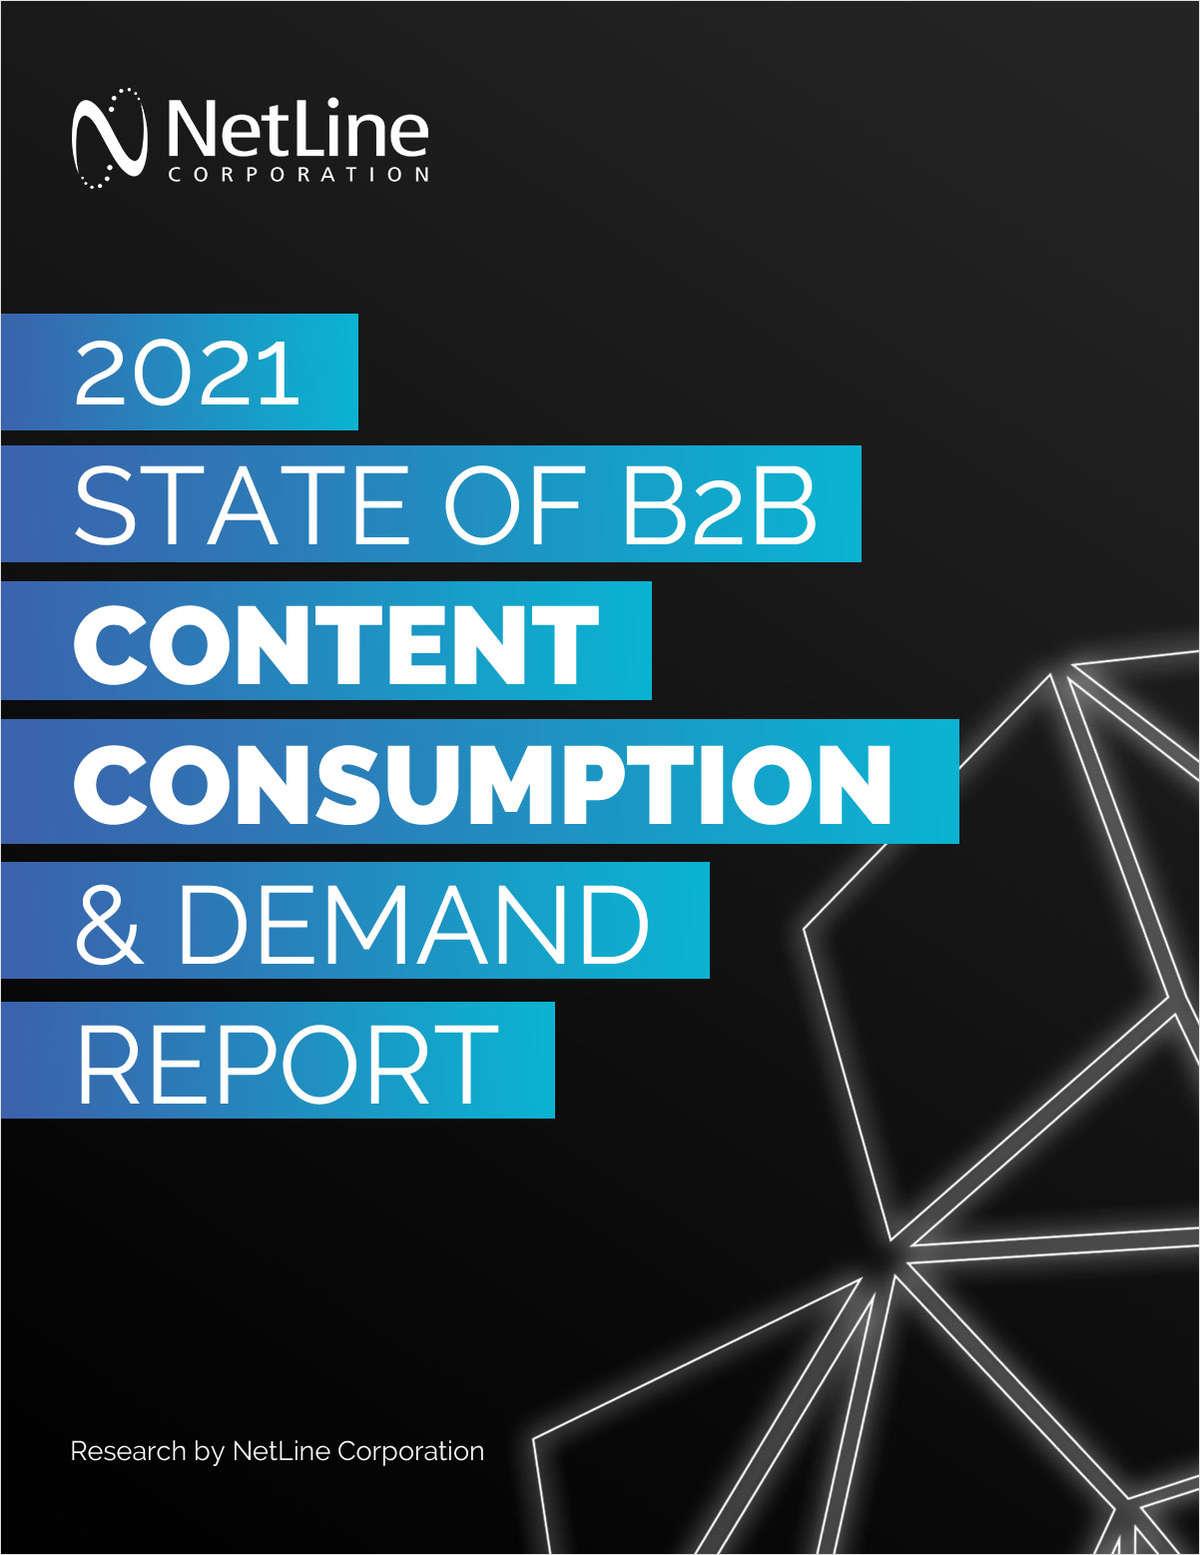 2021 State of B2B Content Consumption and Demand Report for Marketers